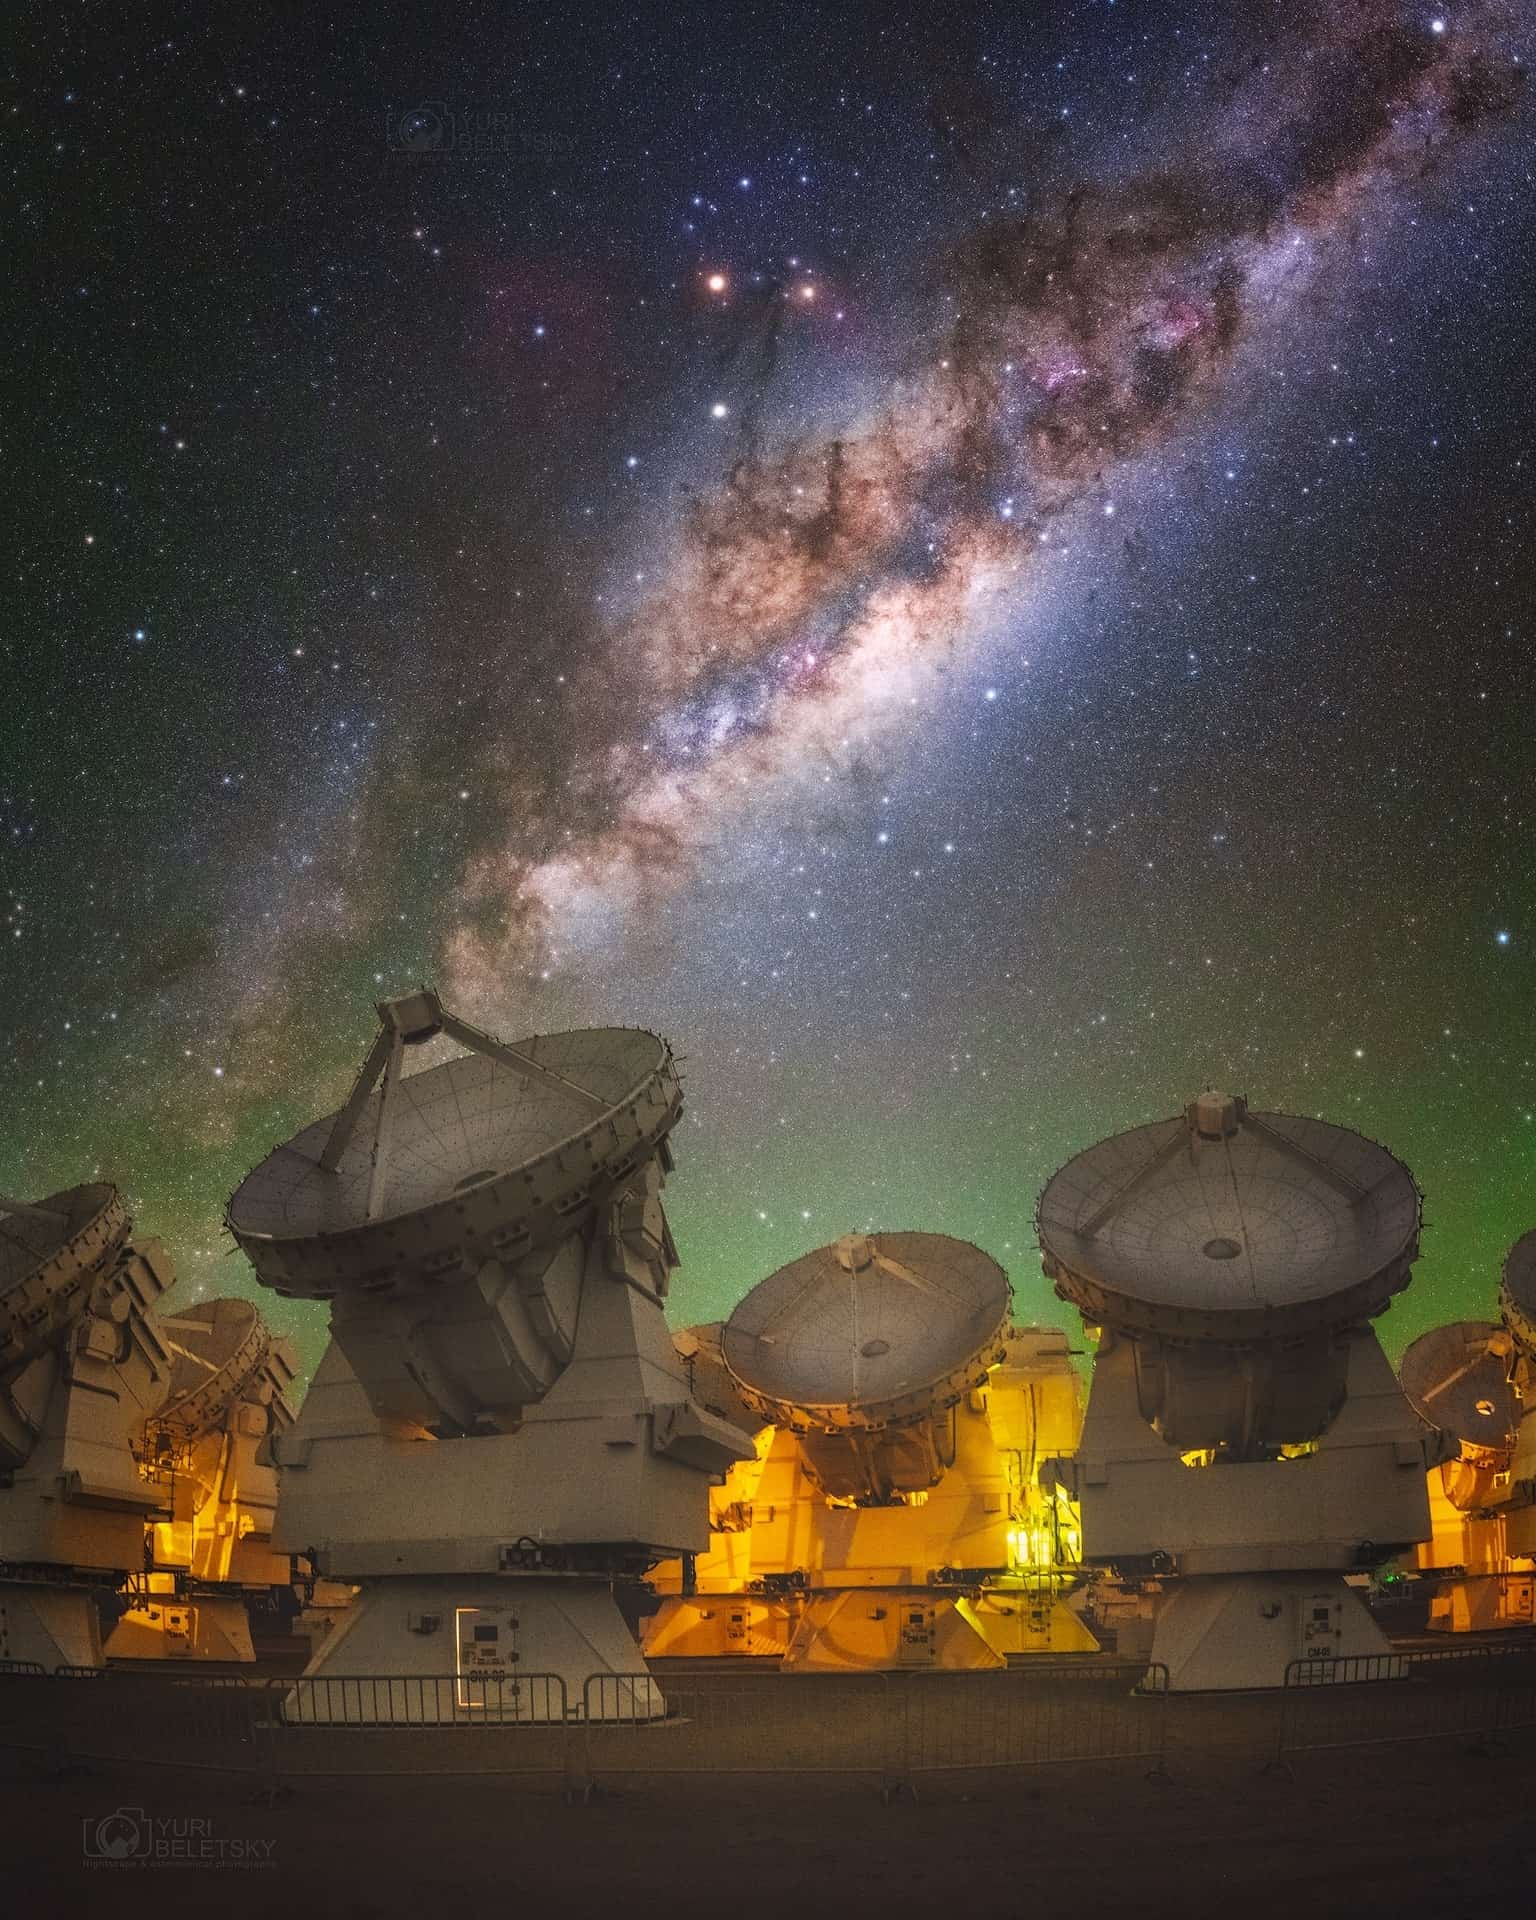 Best Milky Way image observatory